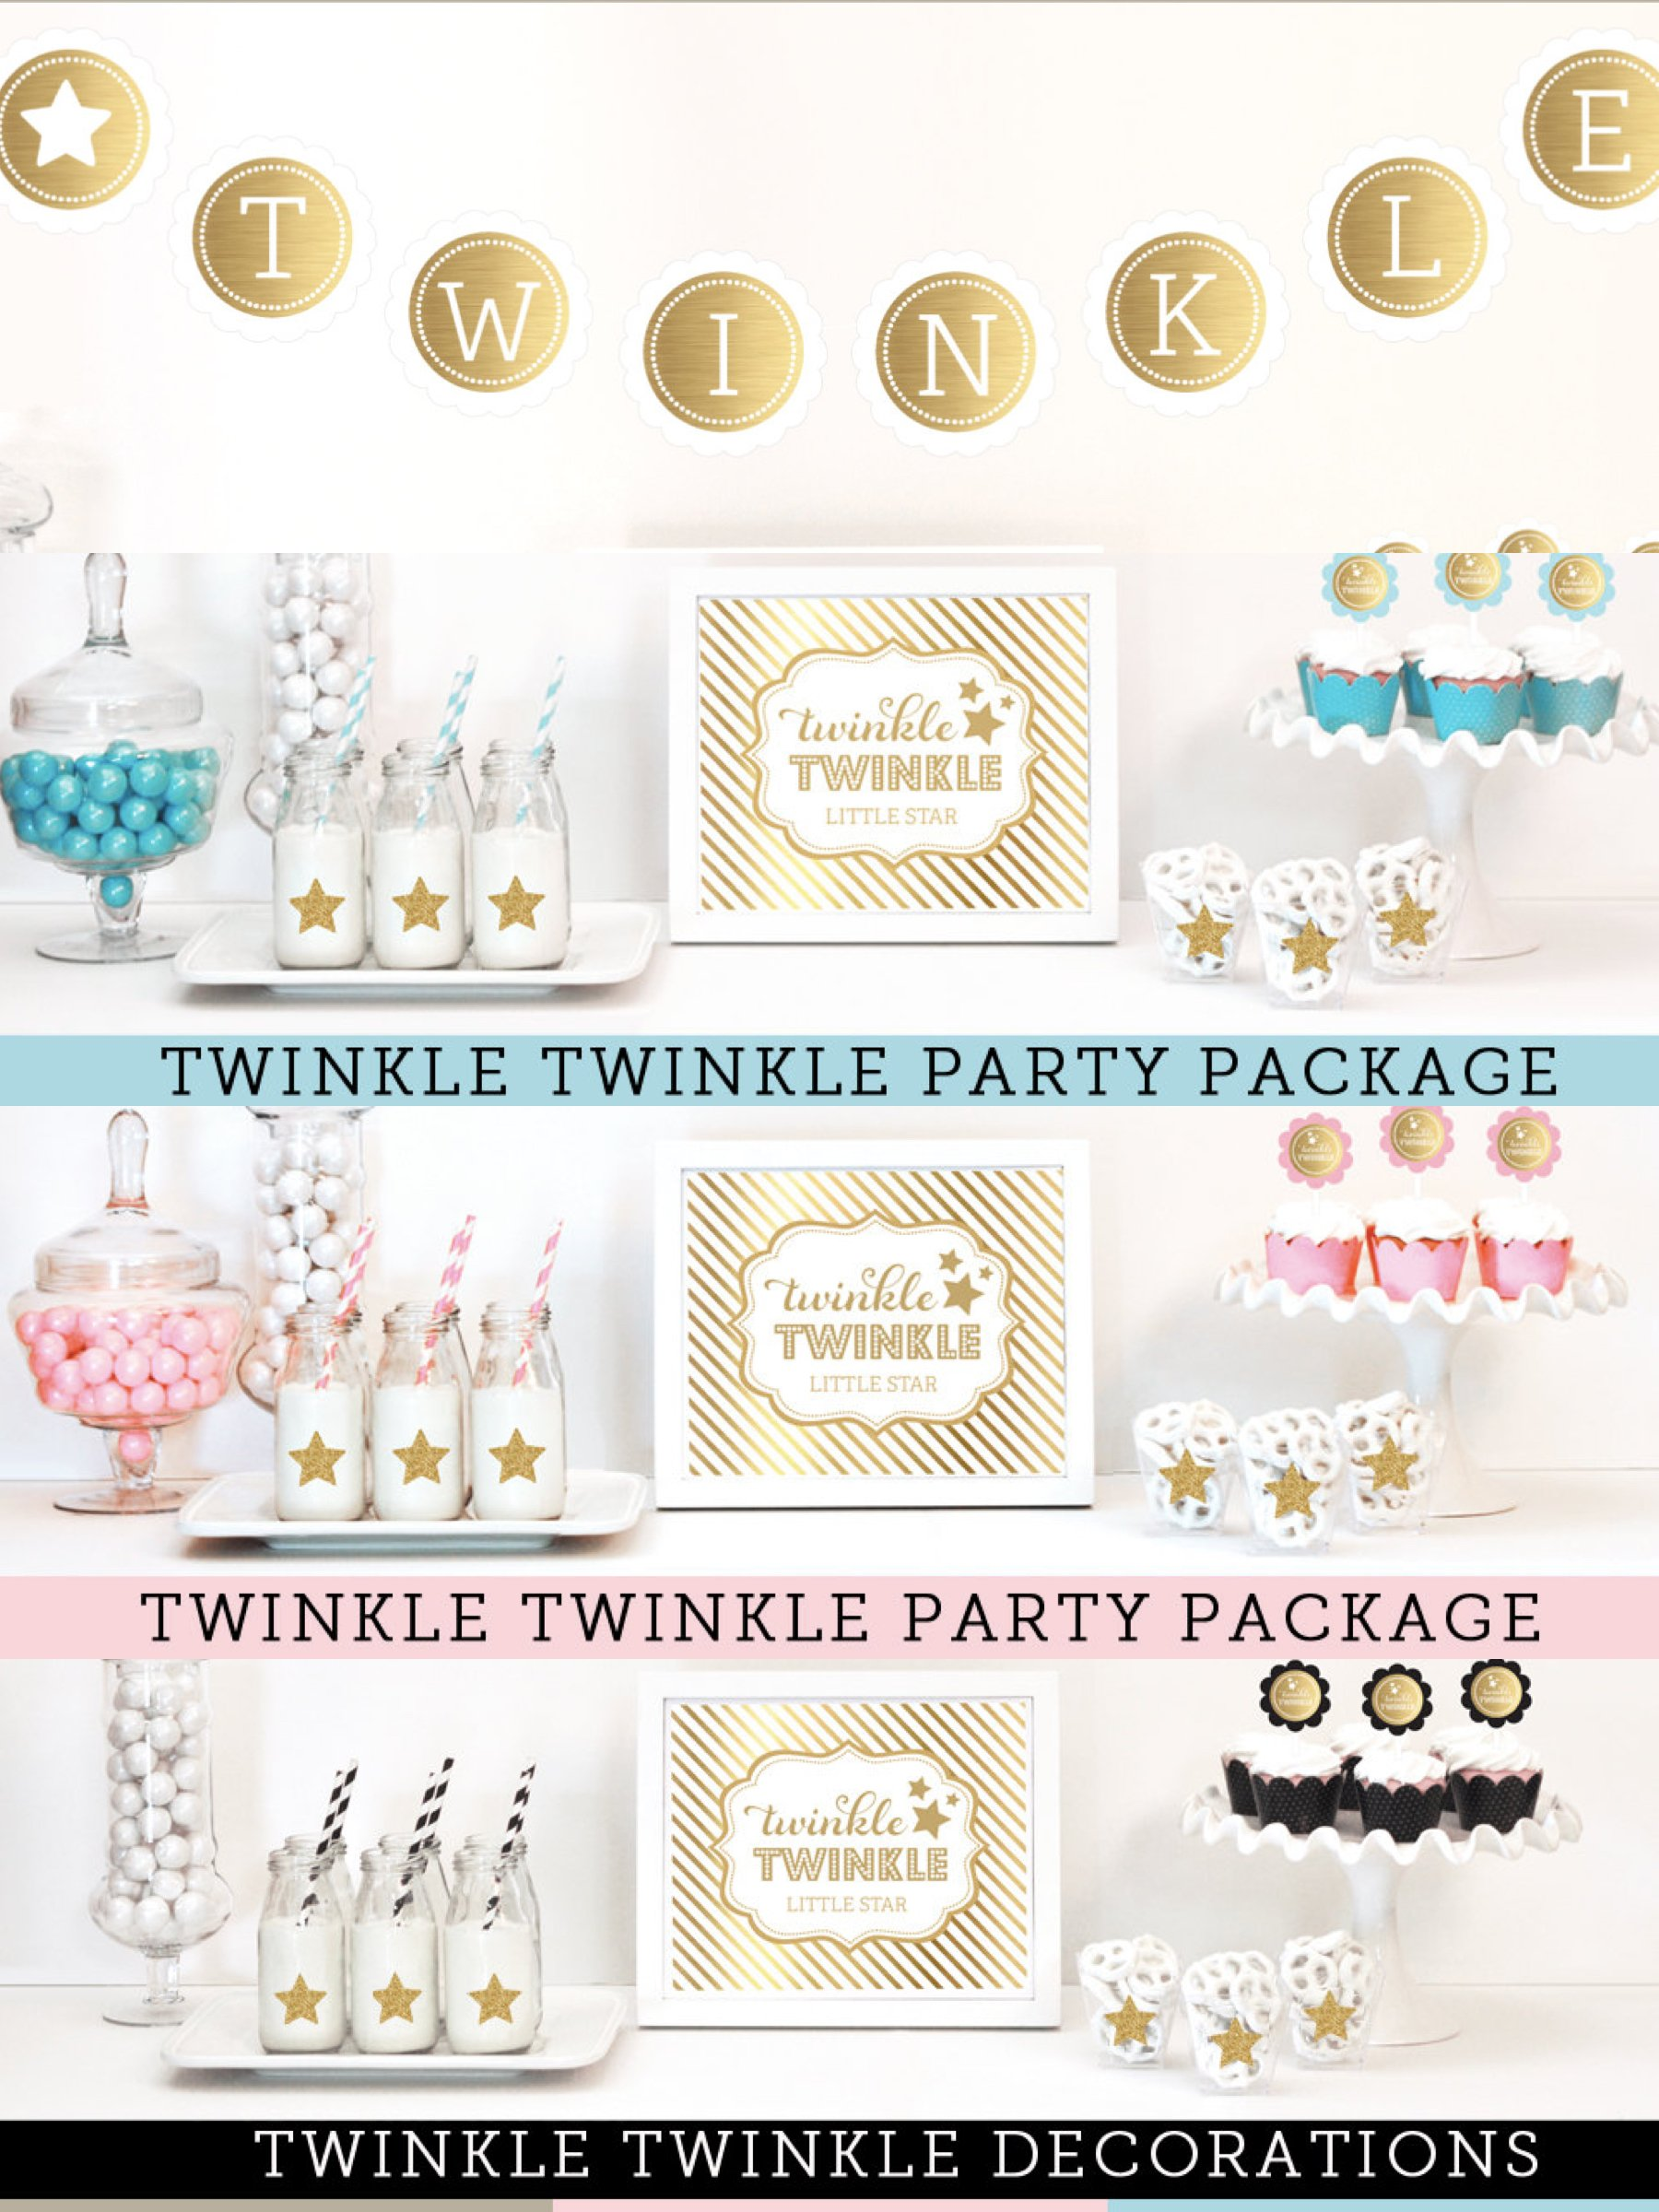 Twinkle Little Star Party Decorations